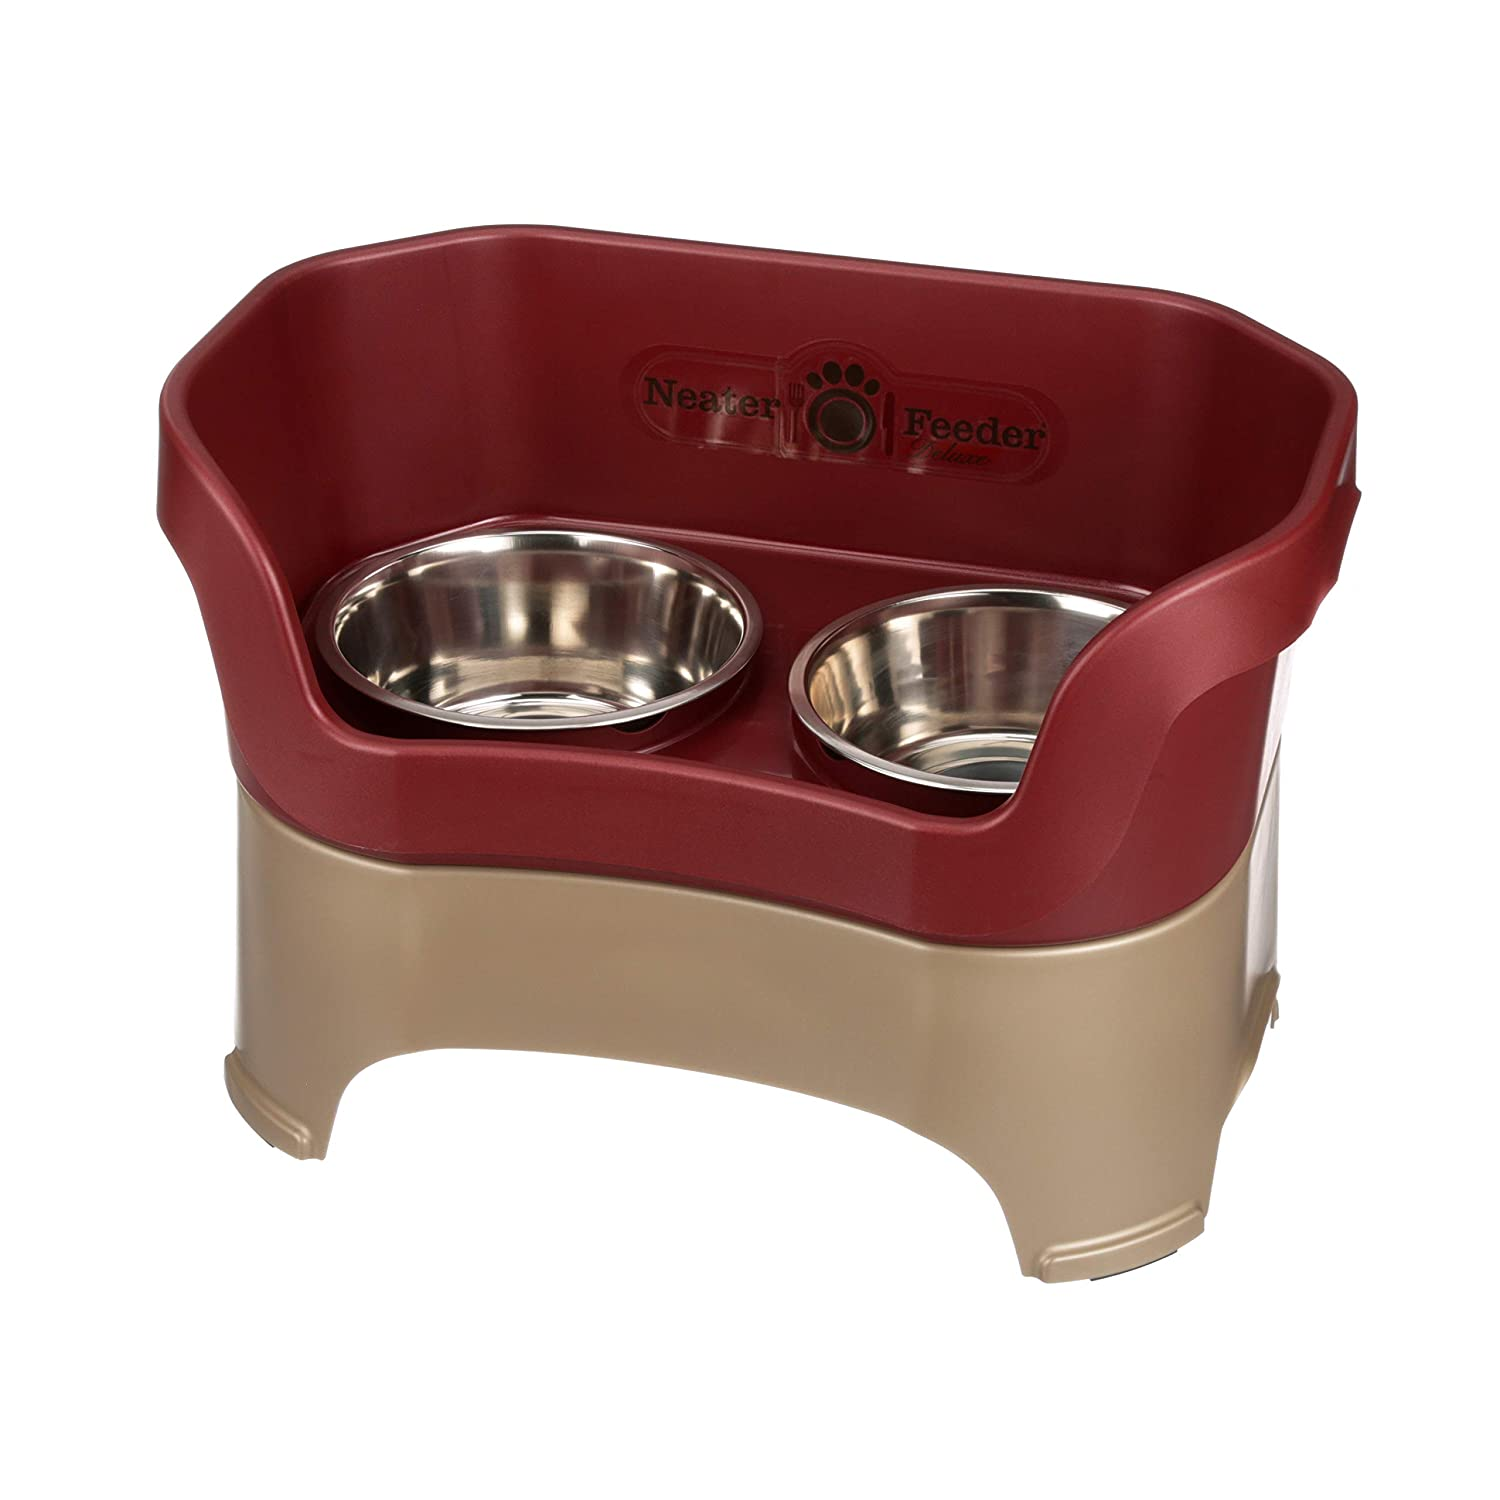 Cranberry Large Cranberry Large Neater Pet Brands 100-230-CT Deluxe Pet Bowl for Large Dogs, Cranberry